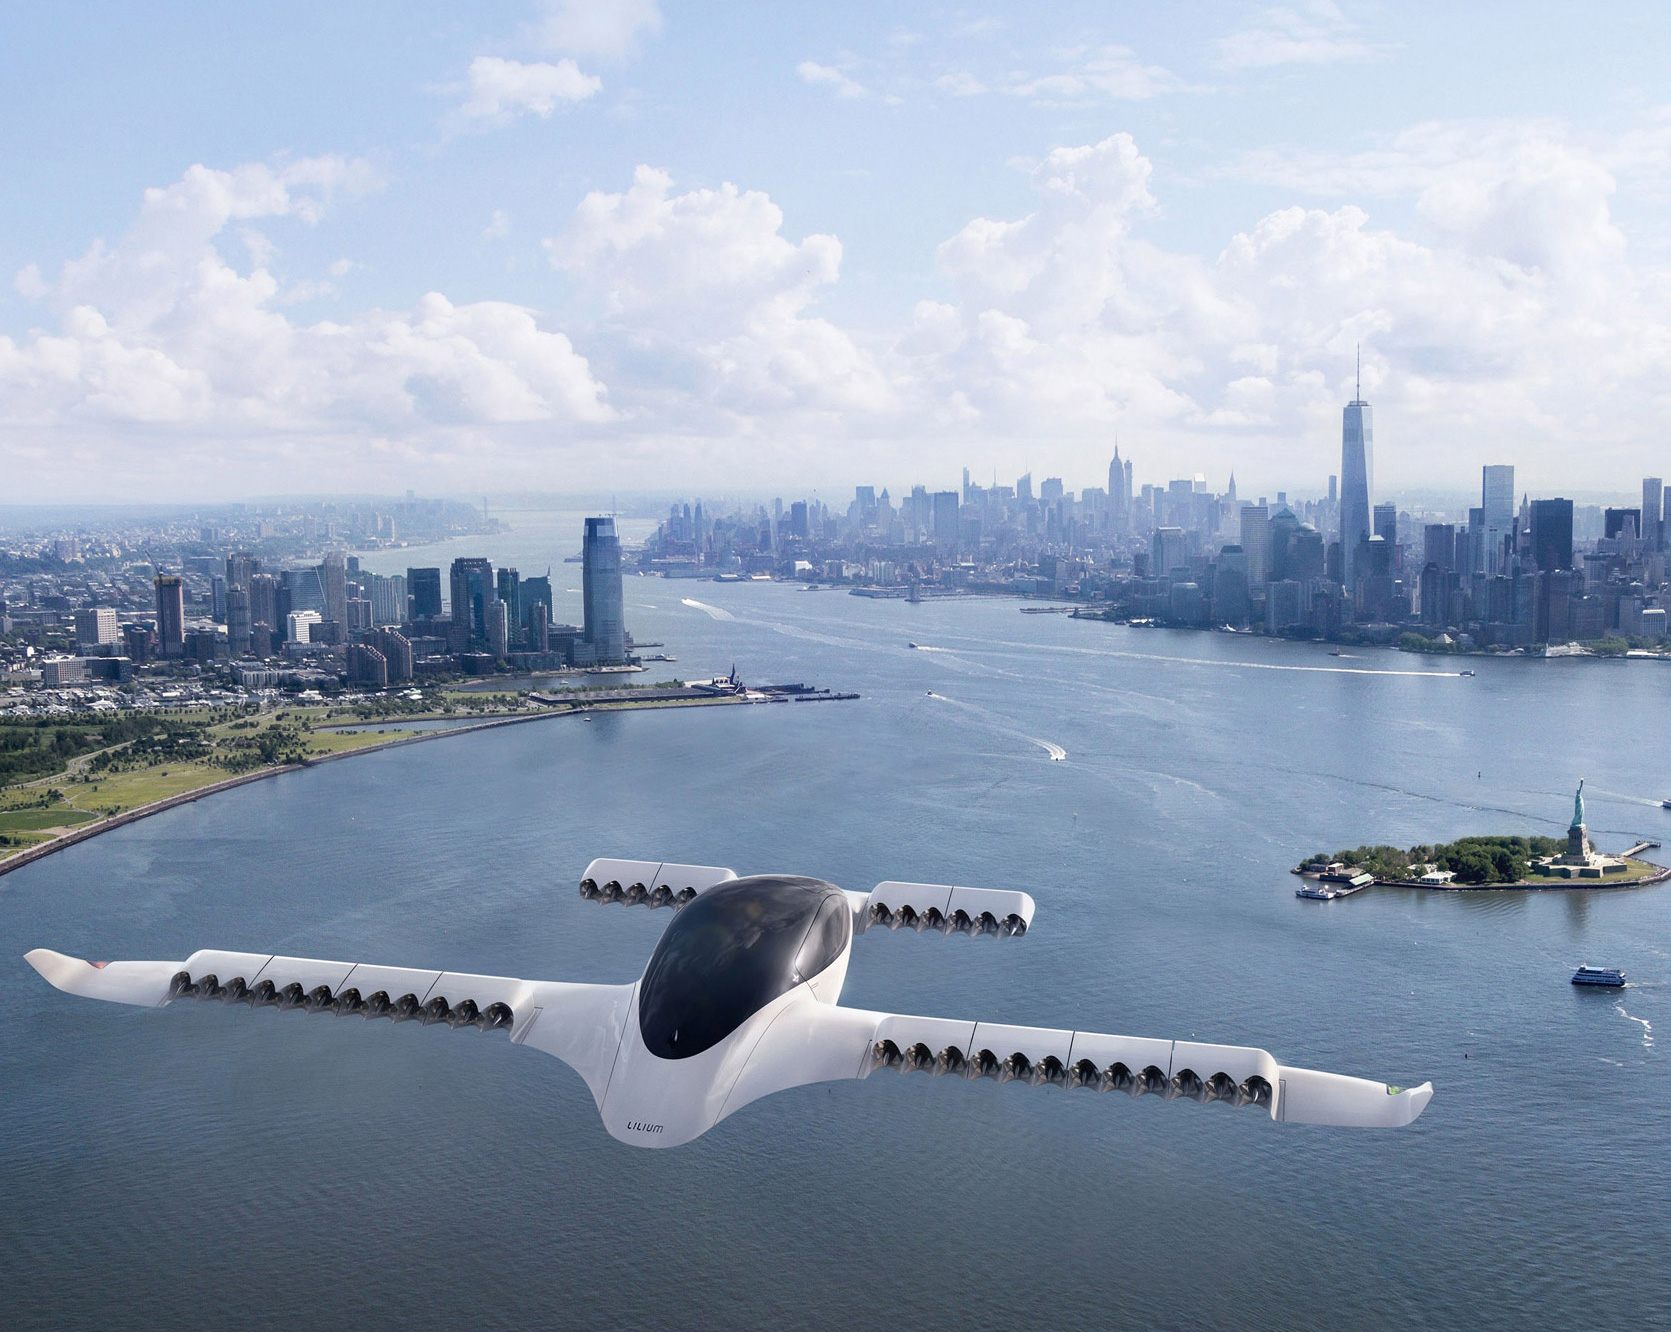 Lilium Jet - the world's first all-electric, vertical take-off and landing aircraft | Cross Border Conversations | Frank Stephenson X Gul Panag | STIR X LOCO Design